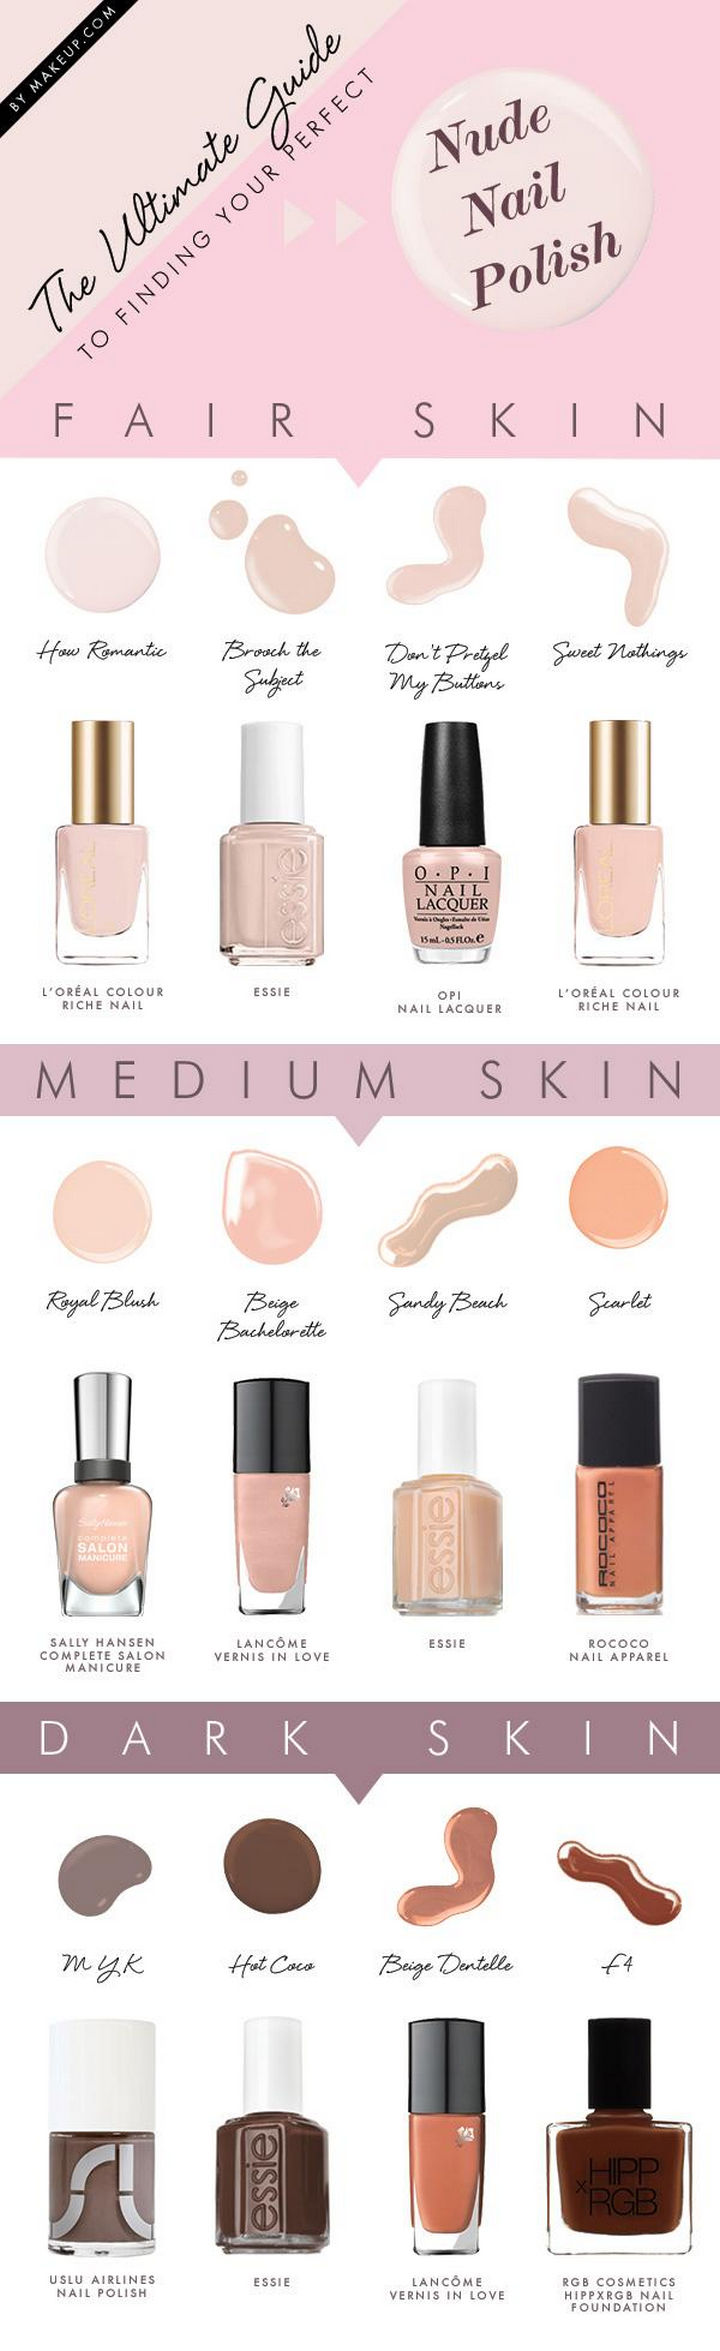 22 Kickass Life Hacks for Girls - Find the perfect nude nail polish shade for your skin tone.